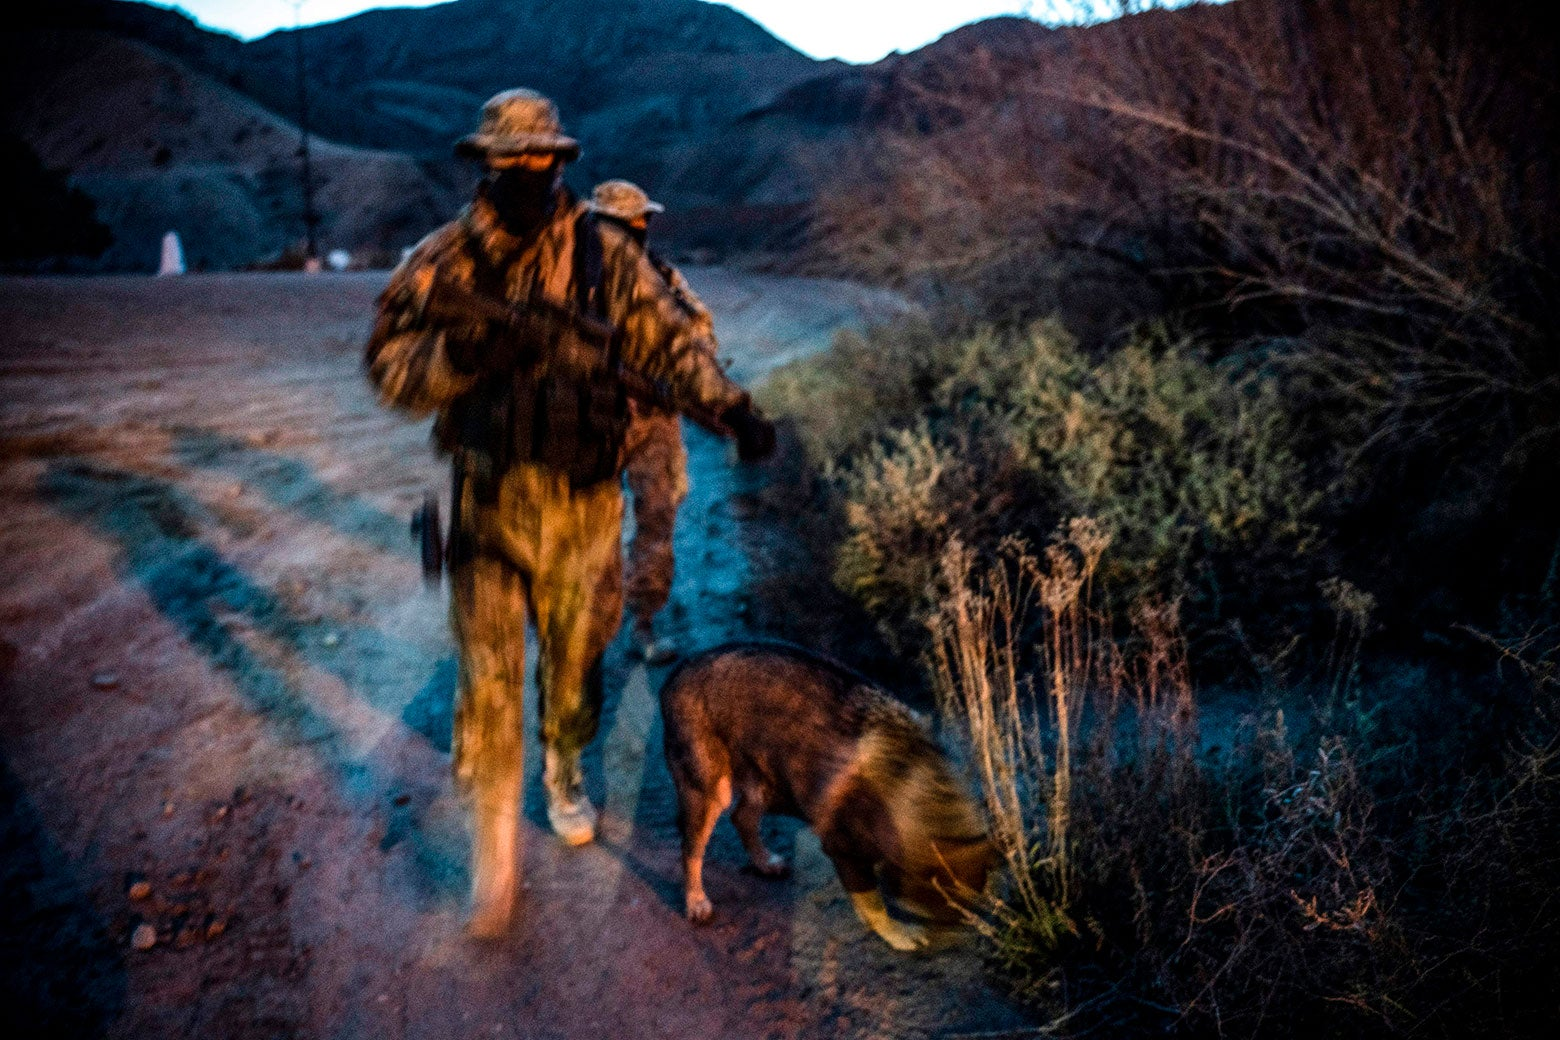 Viper and Stinger, members of the Constitutional Patriots New Mexico Border Ops Team militia who use aliases to protect their identity, patrol the U.S.-Mexico border in Sunland Park, New Mexico on March 20.